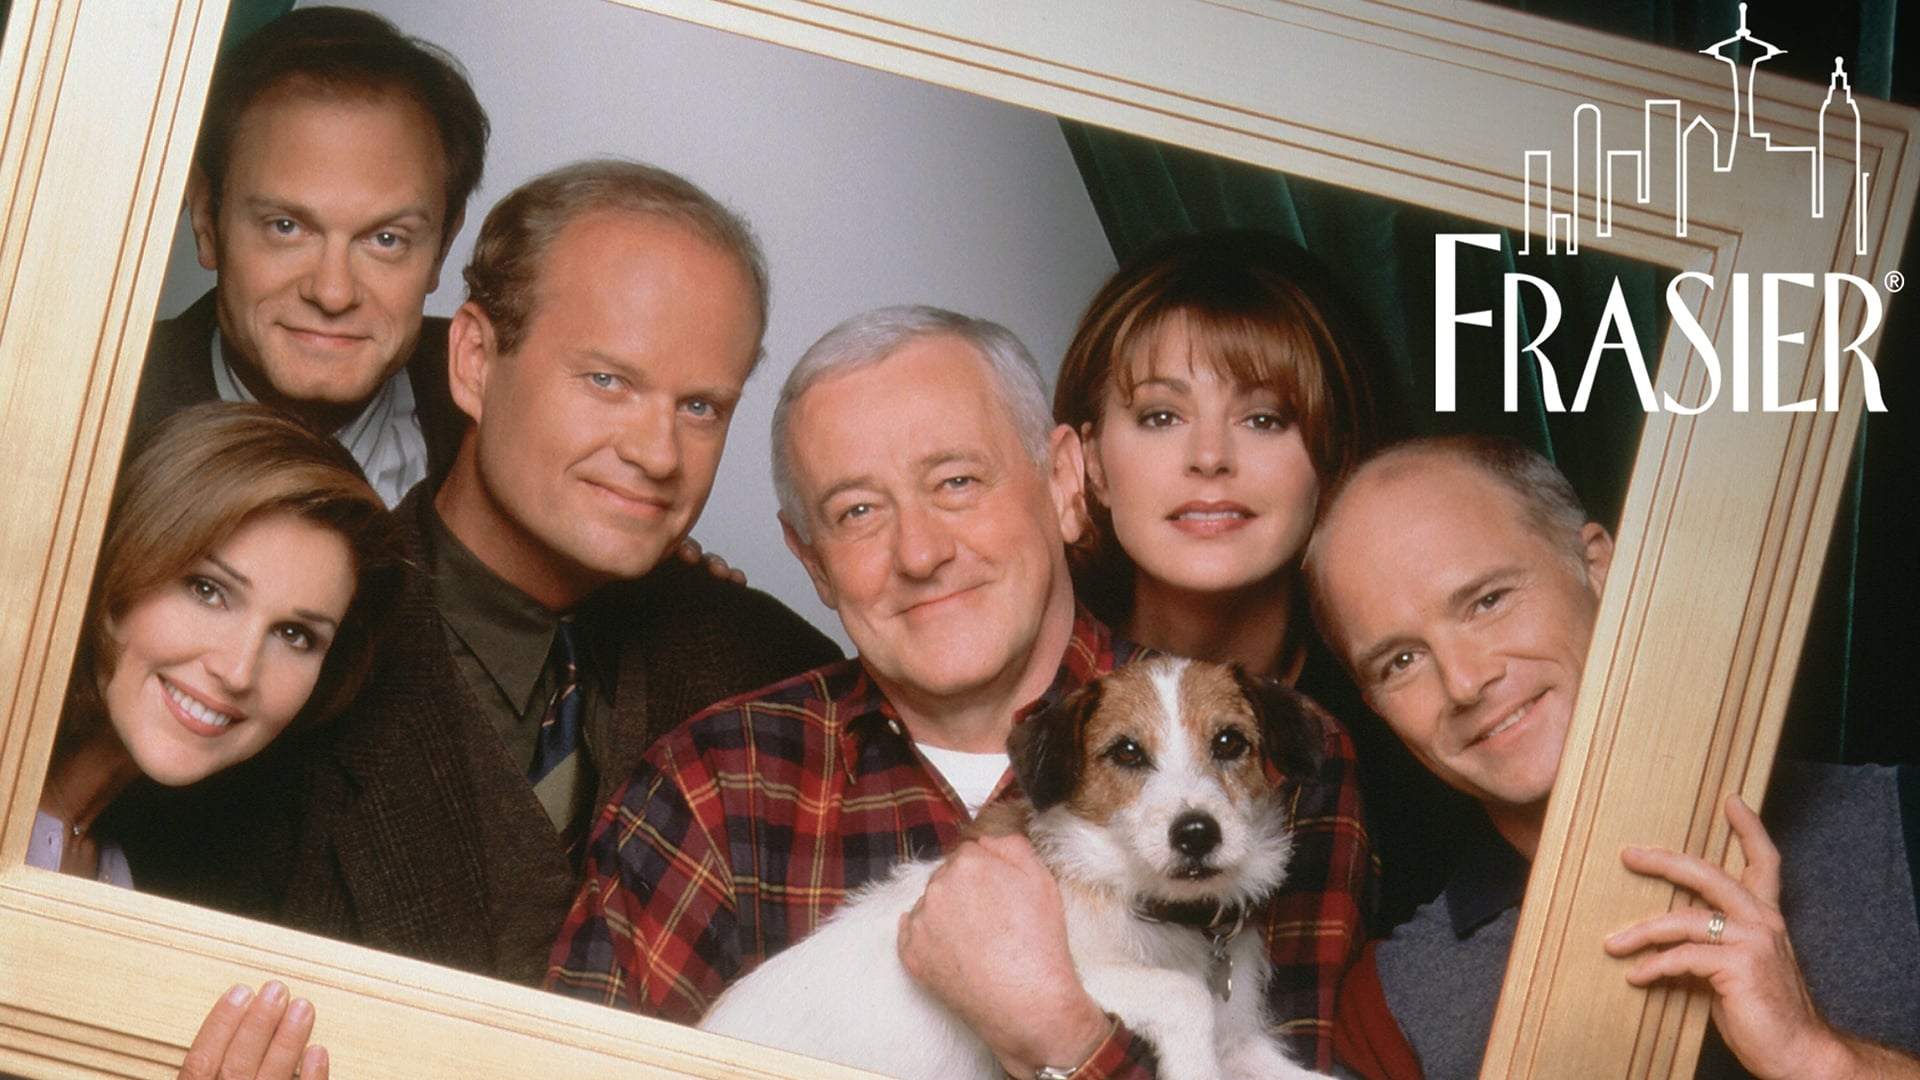 Frasier continuation may be happening!